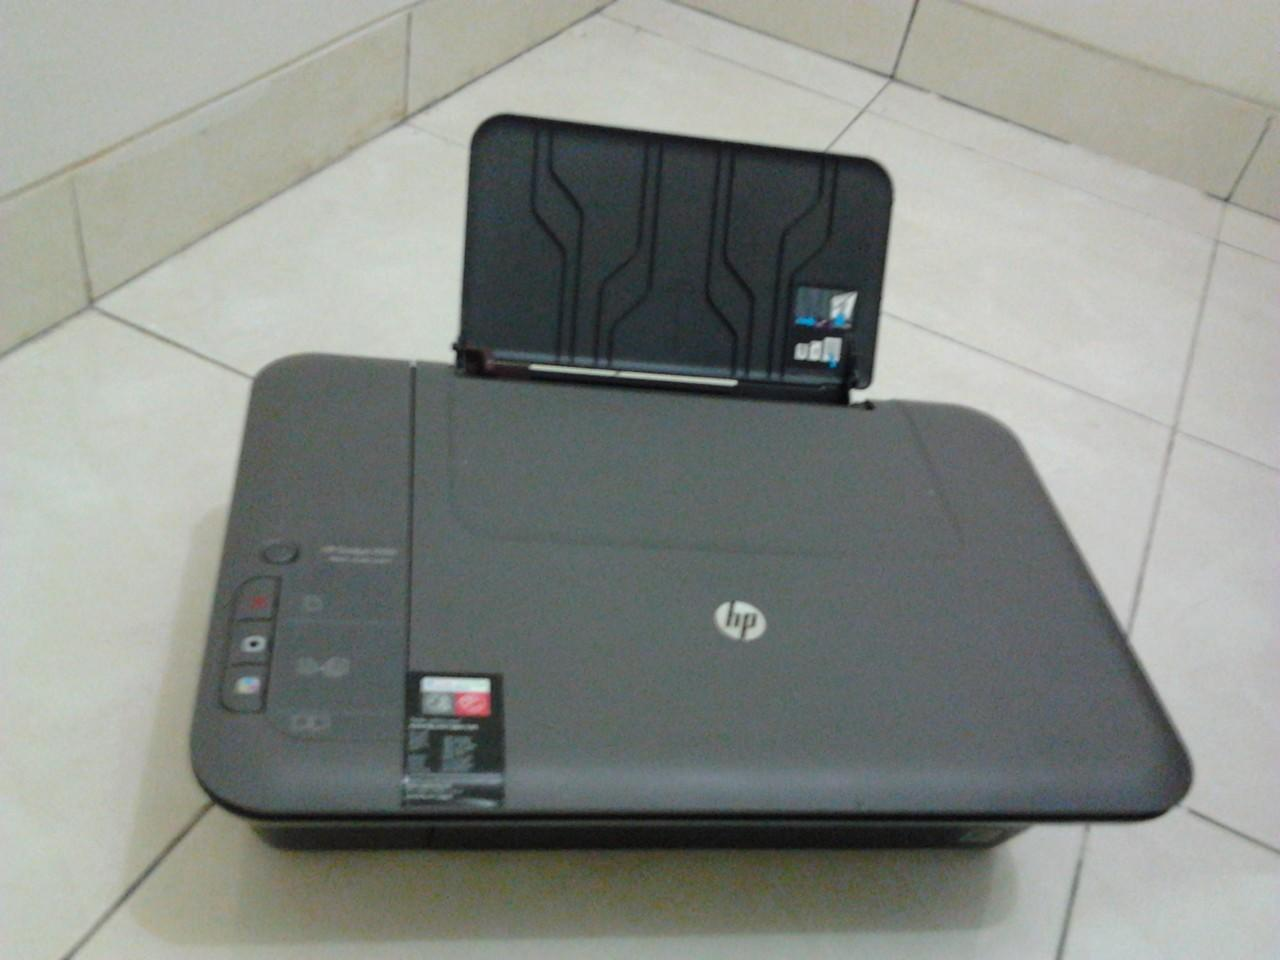 PRINTER & SCANNER HP DESKJET 1050 BEKAS